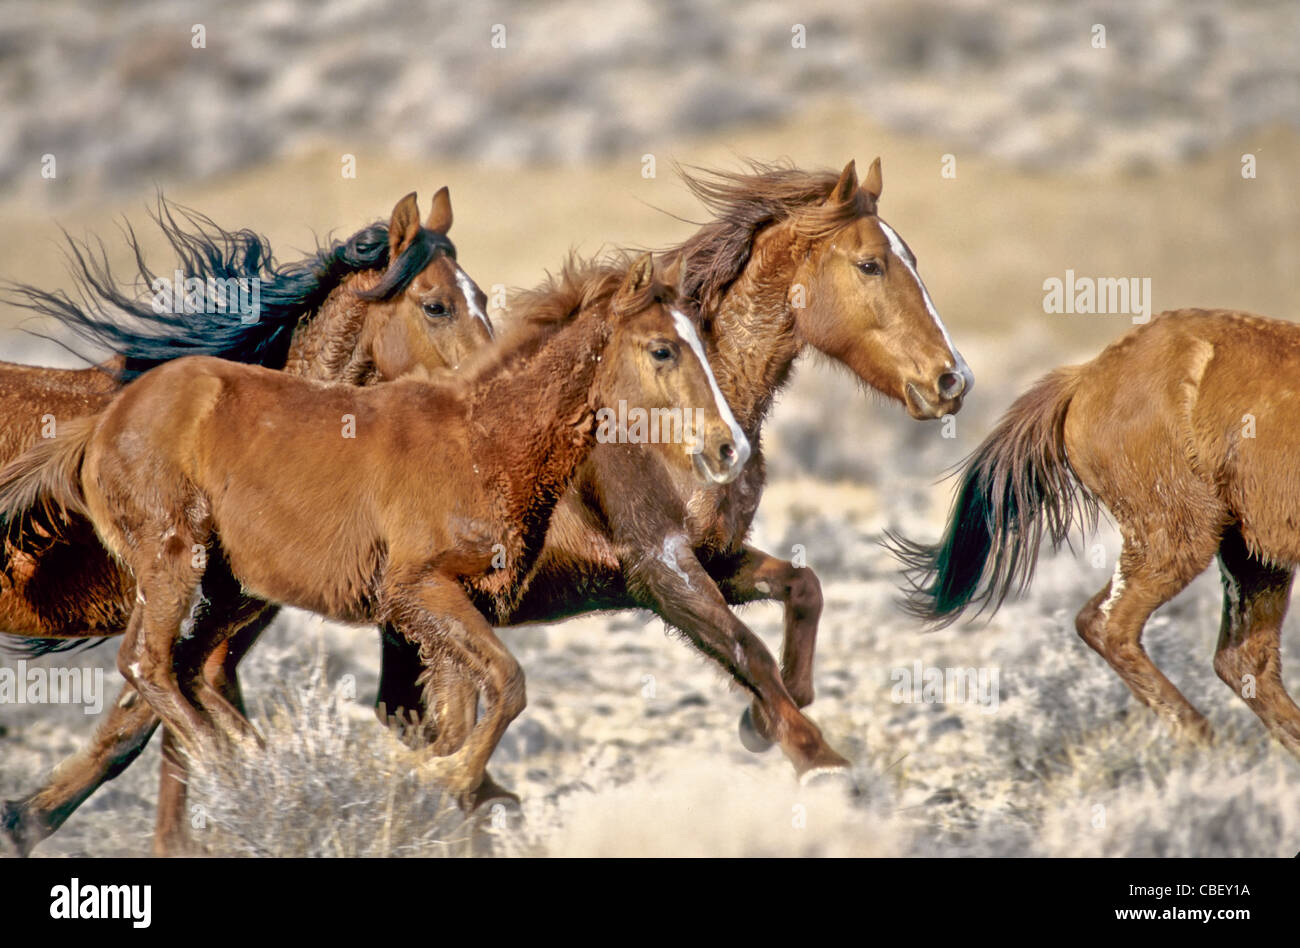 Group of wild horses, full gallop. - Stock Image